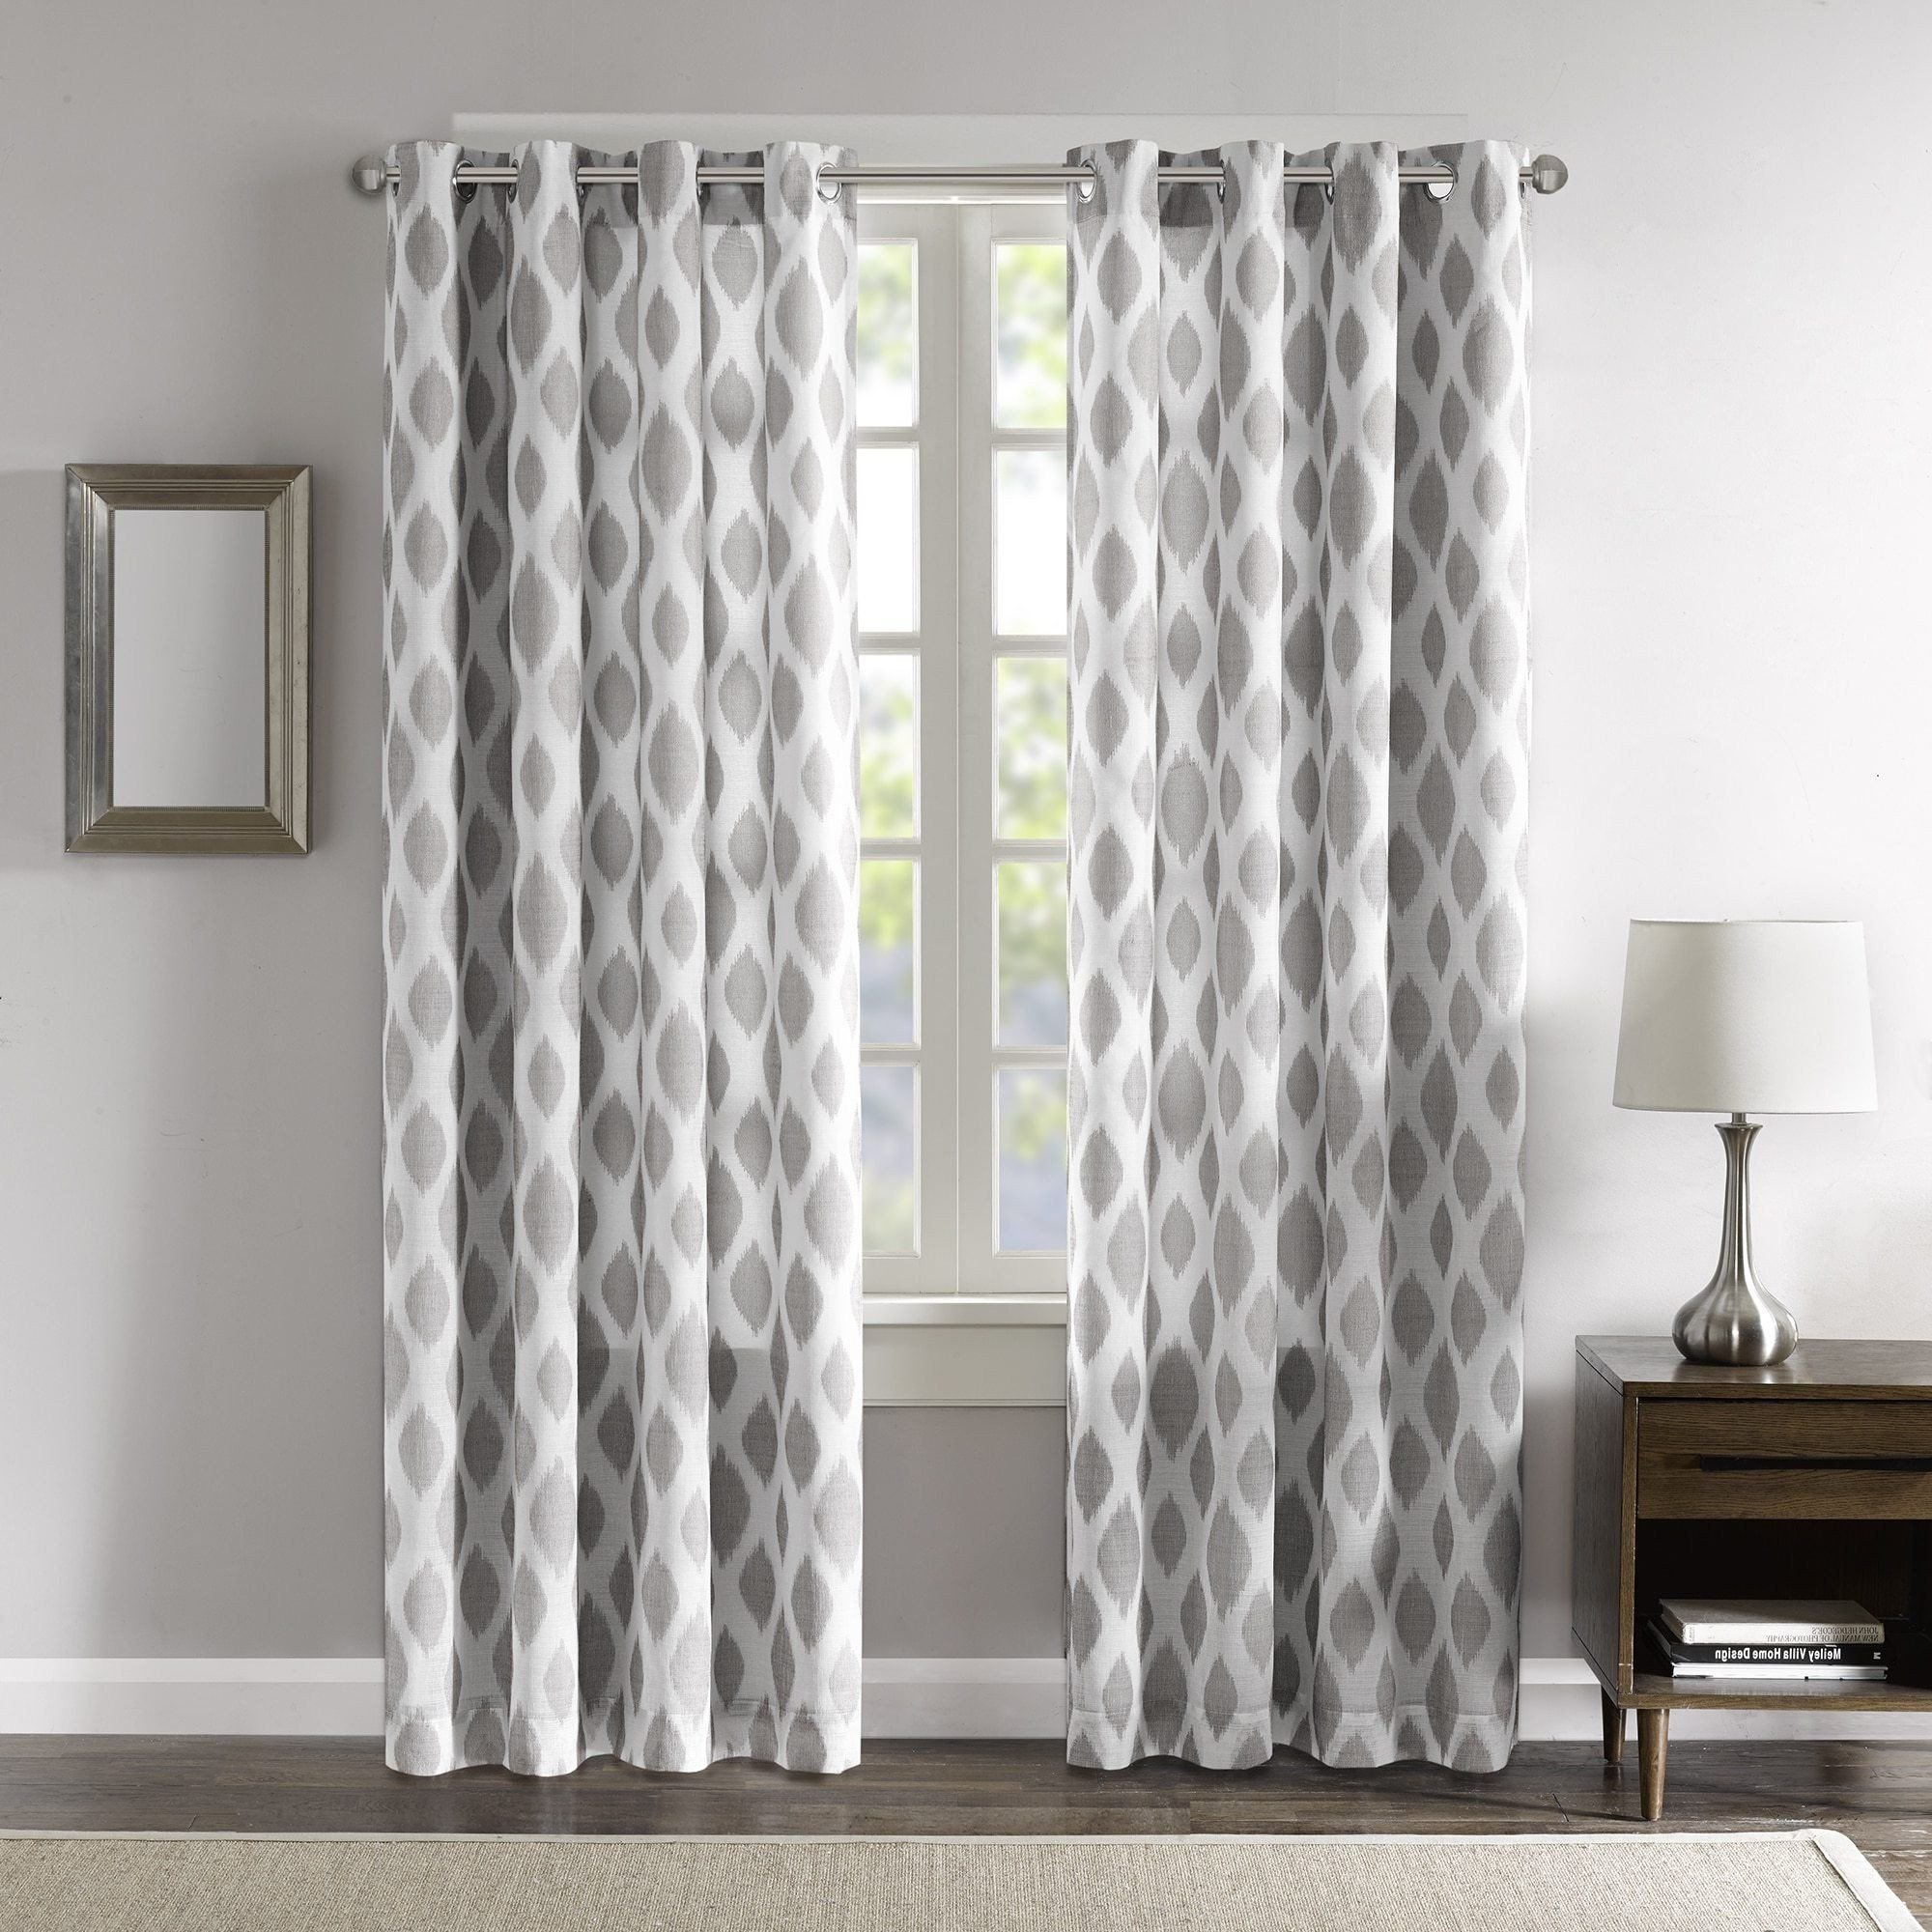 Grey Curtains for Bedroom Inspirational Dh 1 Piece 84 Inch Silver Grey White Ikat Curtain Panel